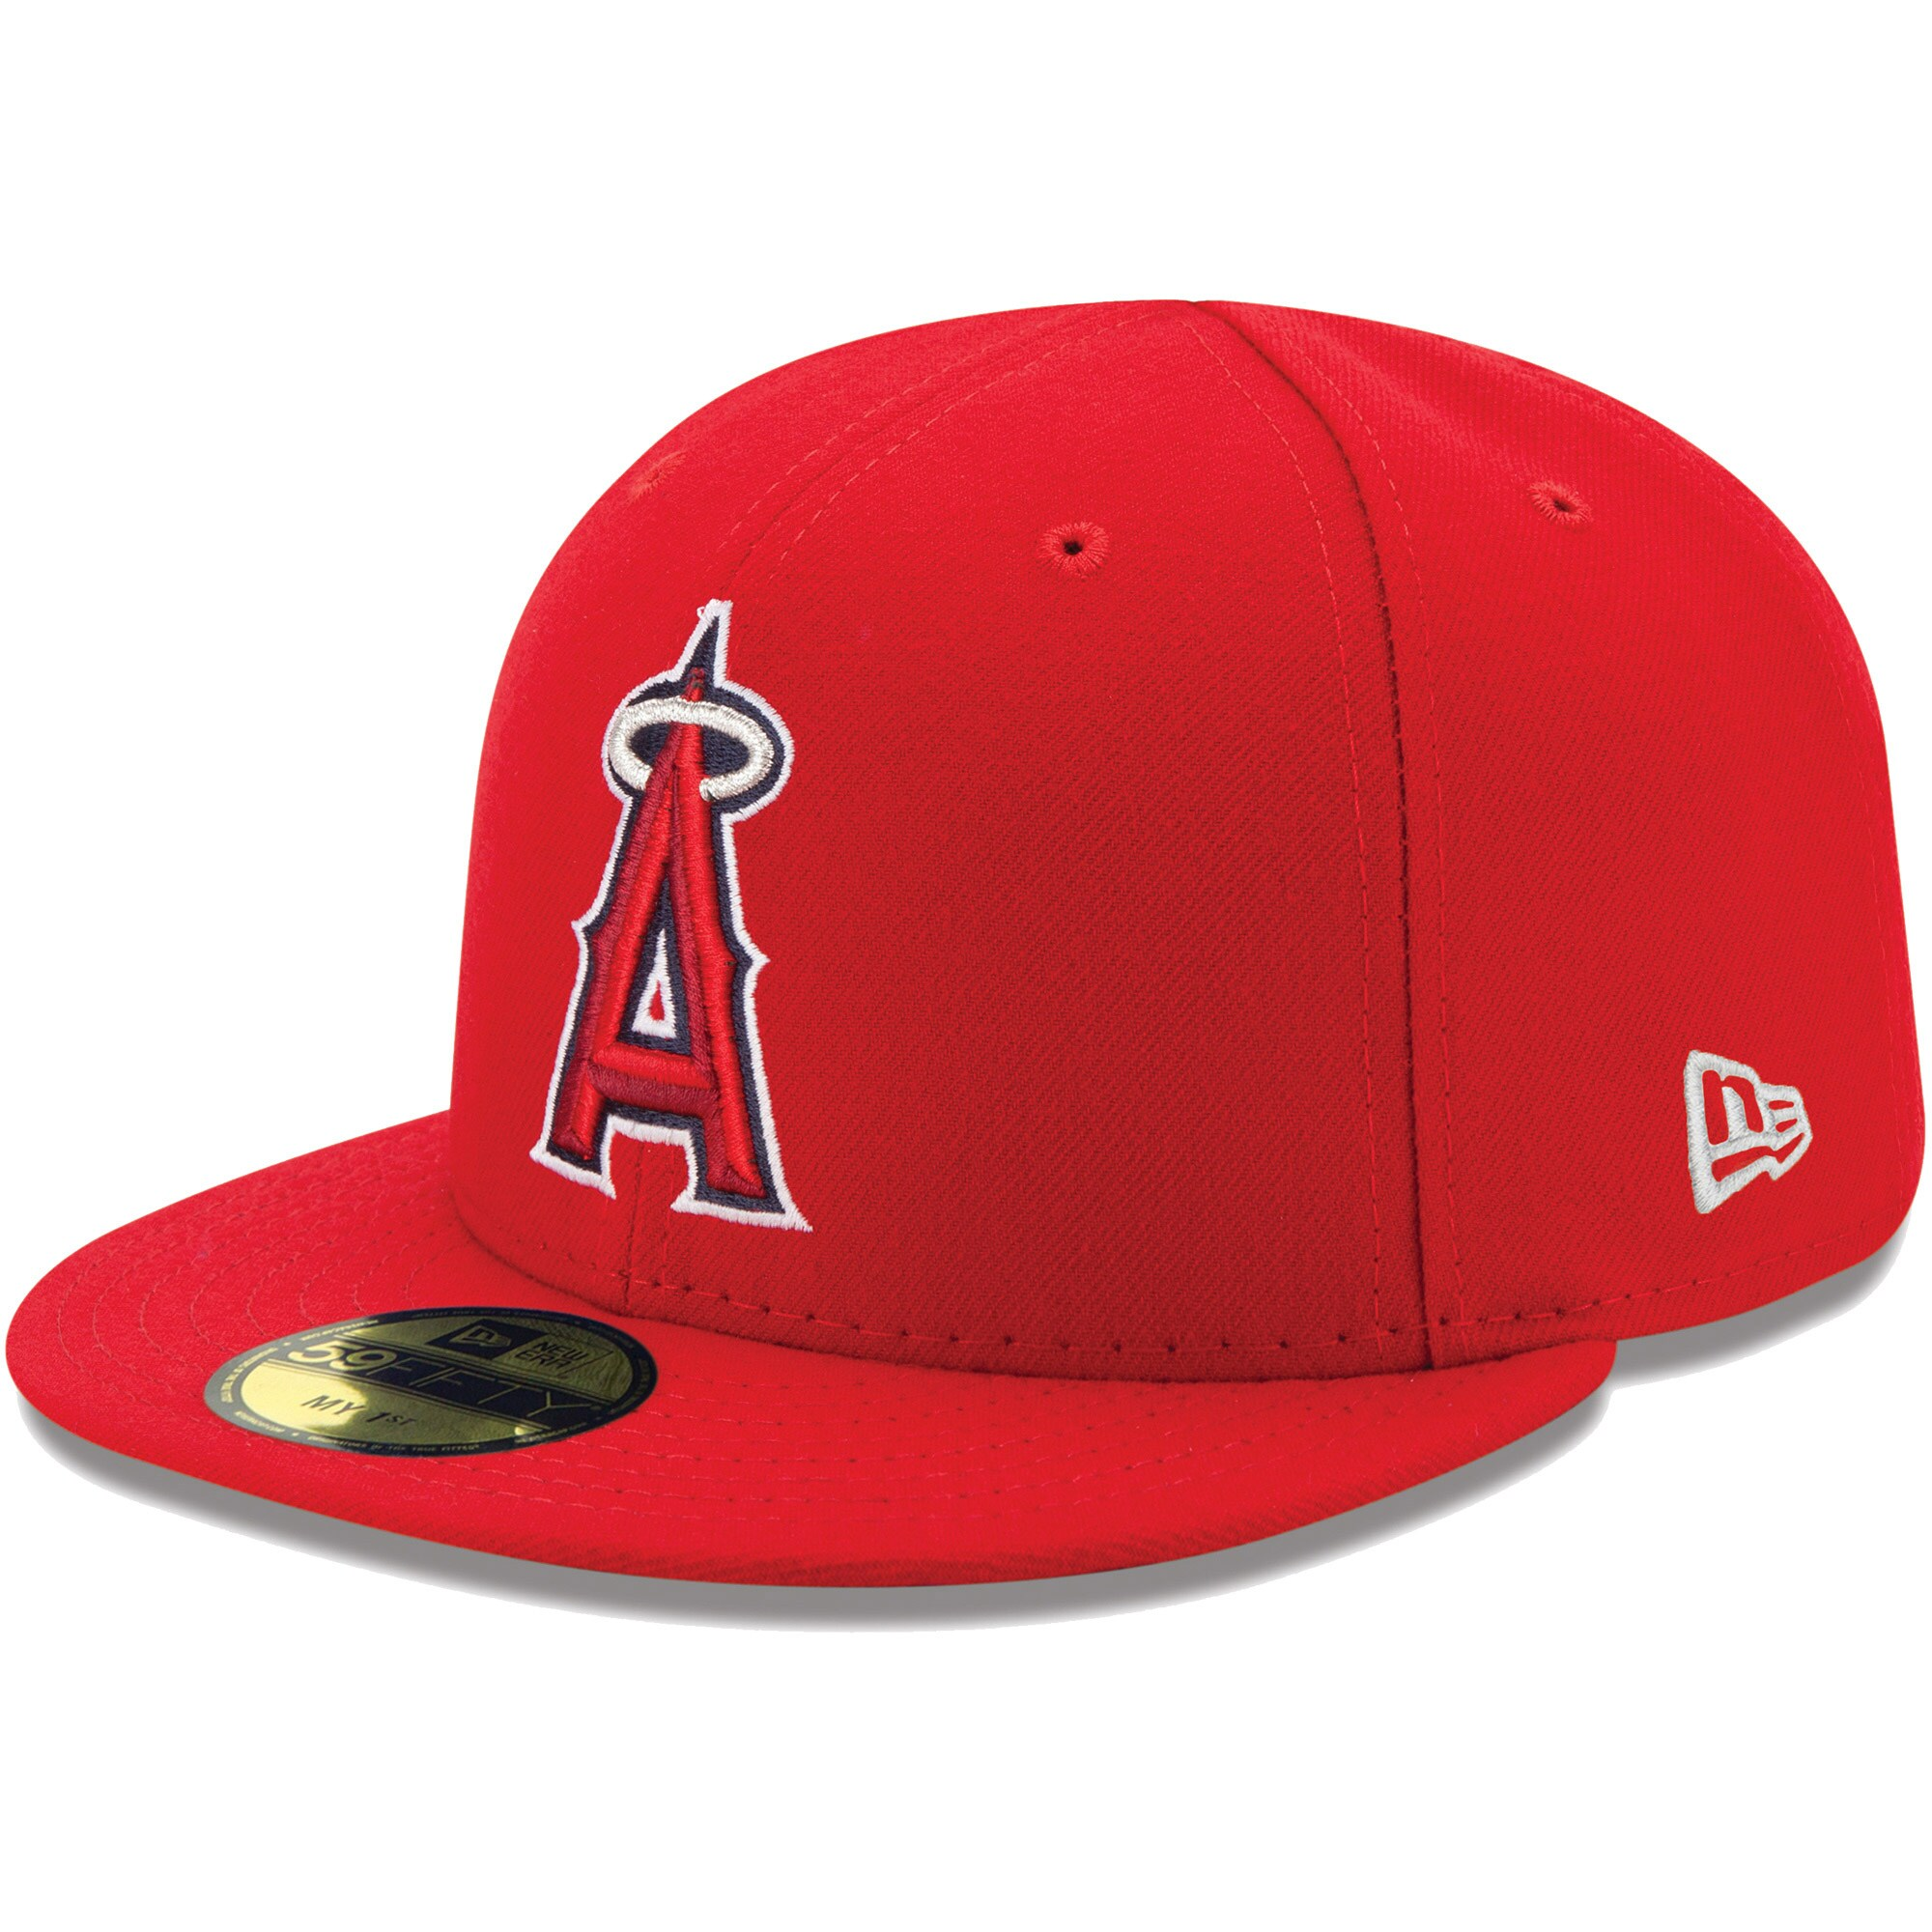 Los Angeles Angels New Era Infant MLB Authentic Collection On-Field My First 59FIFTY Fitted Hat - Red